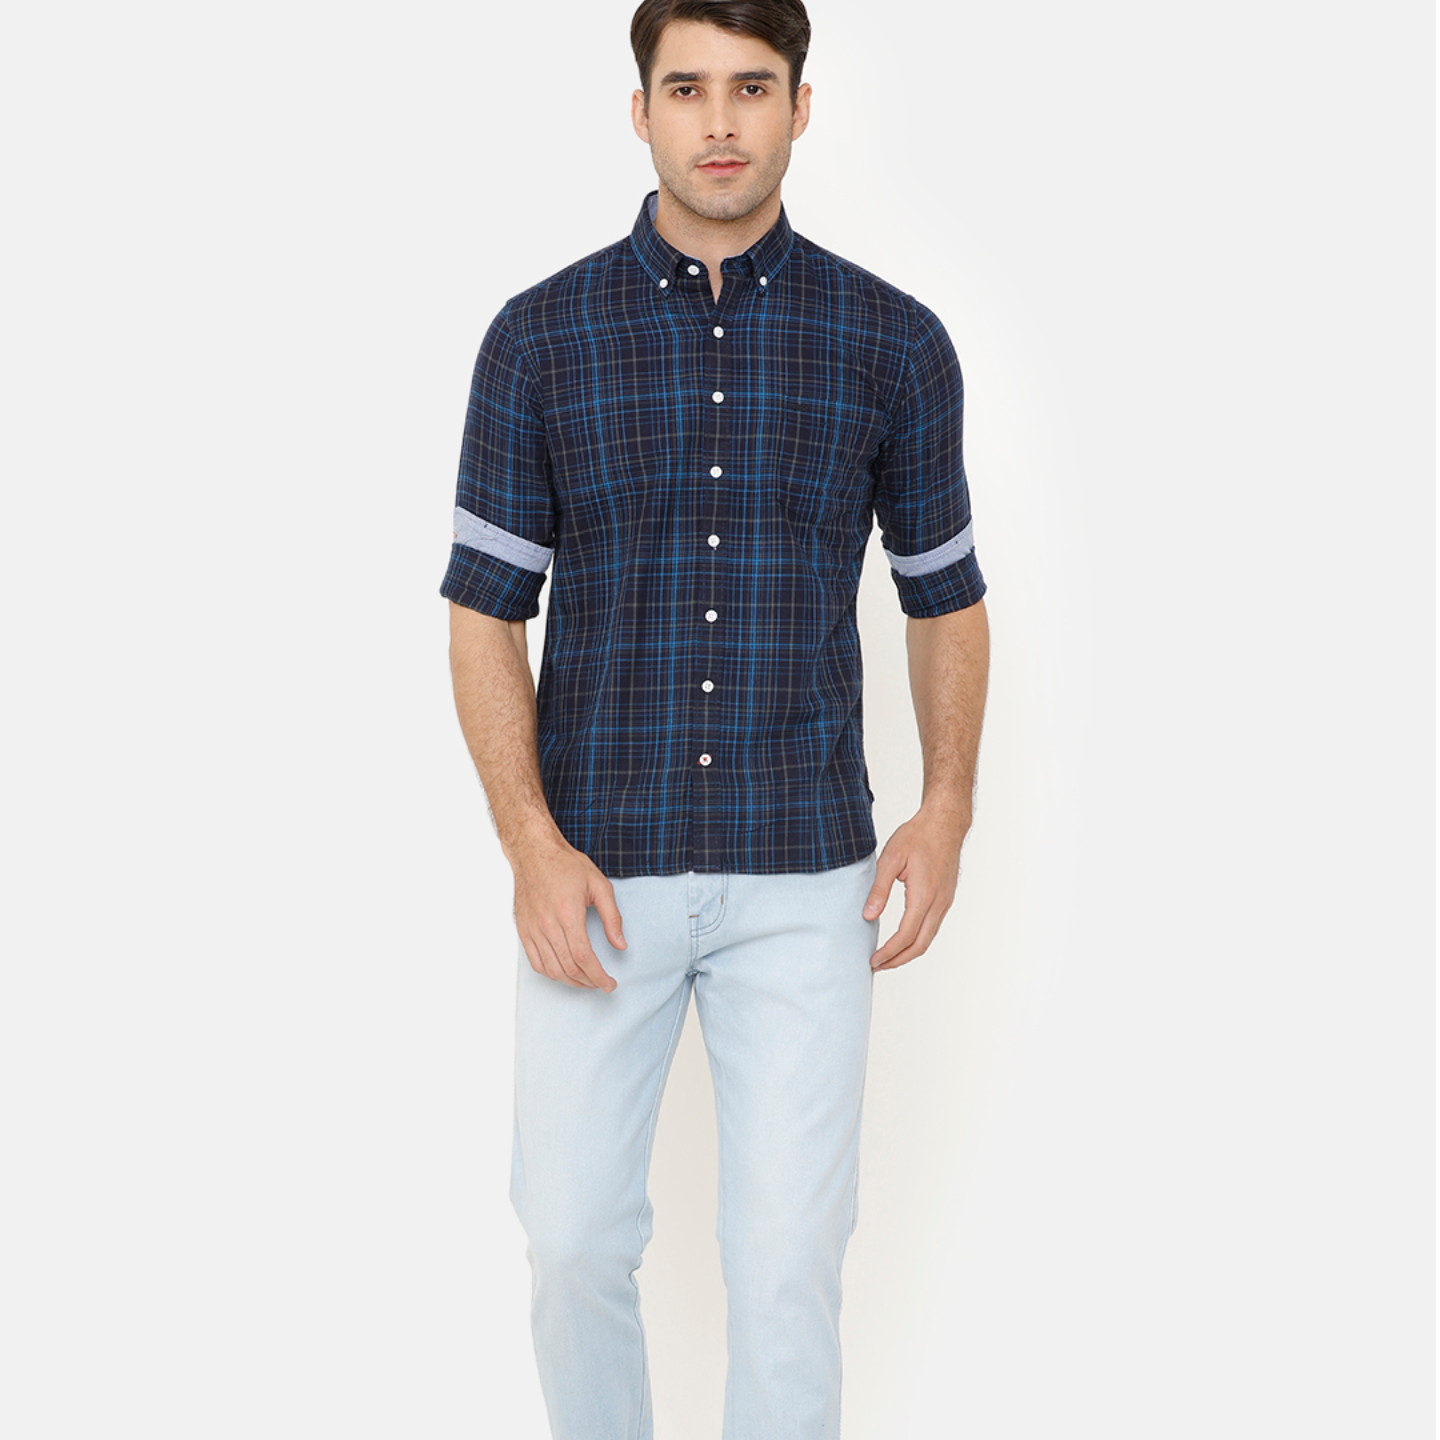 Bar Harbour Men Navy Blue & Blue Slim Fit Checked Casual Shirt